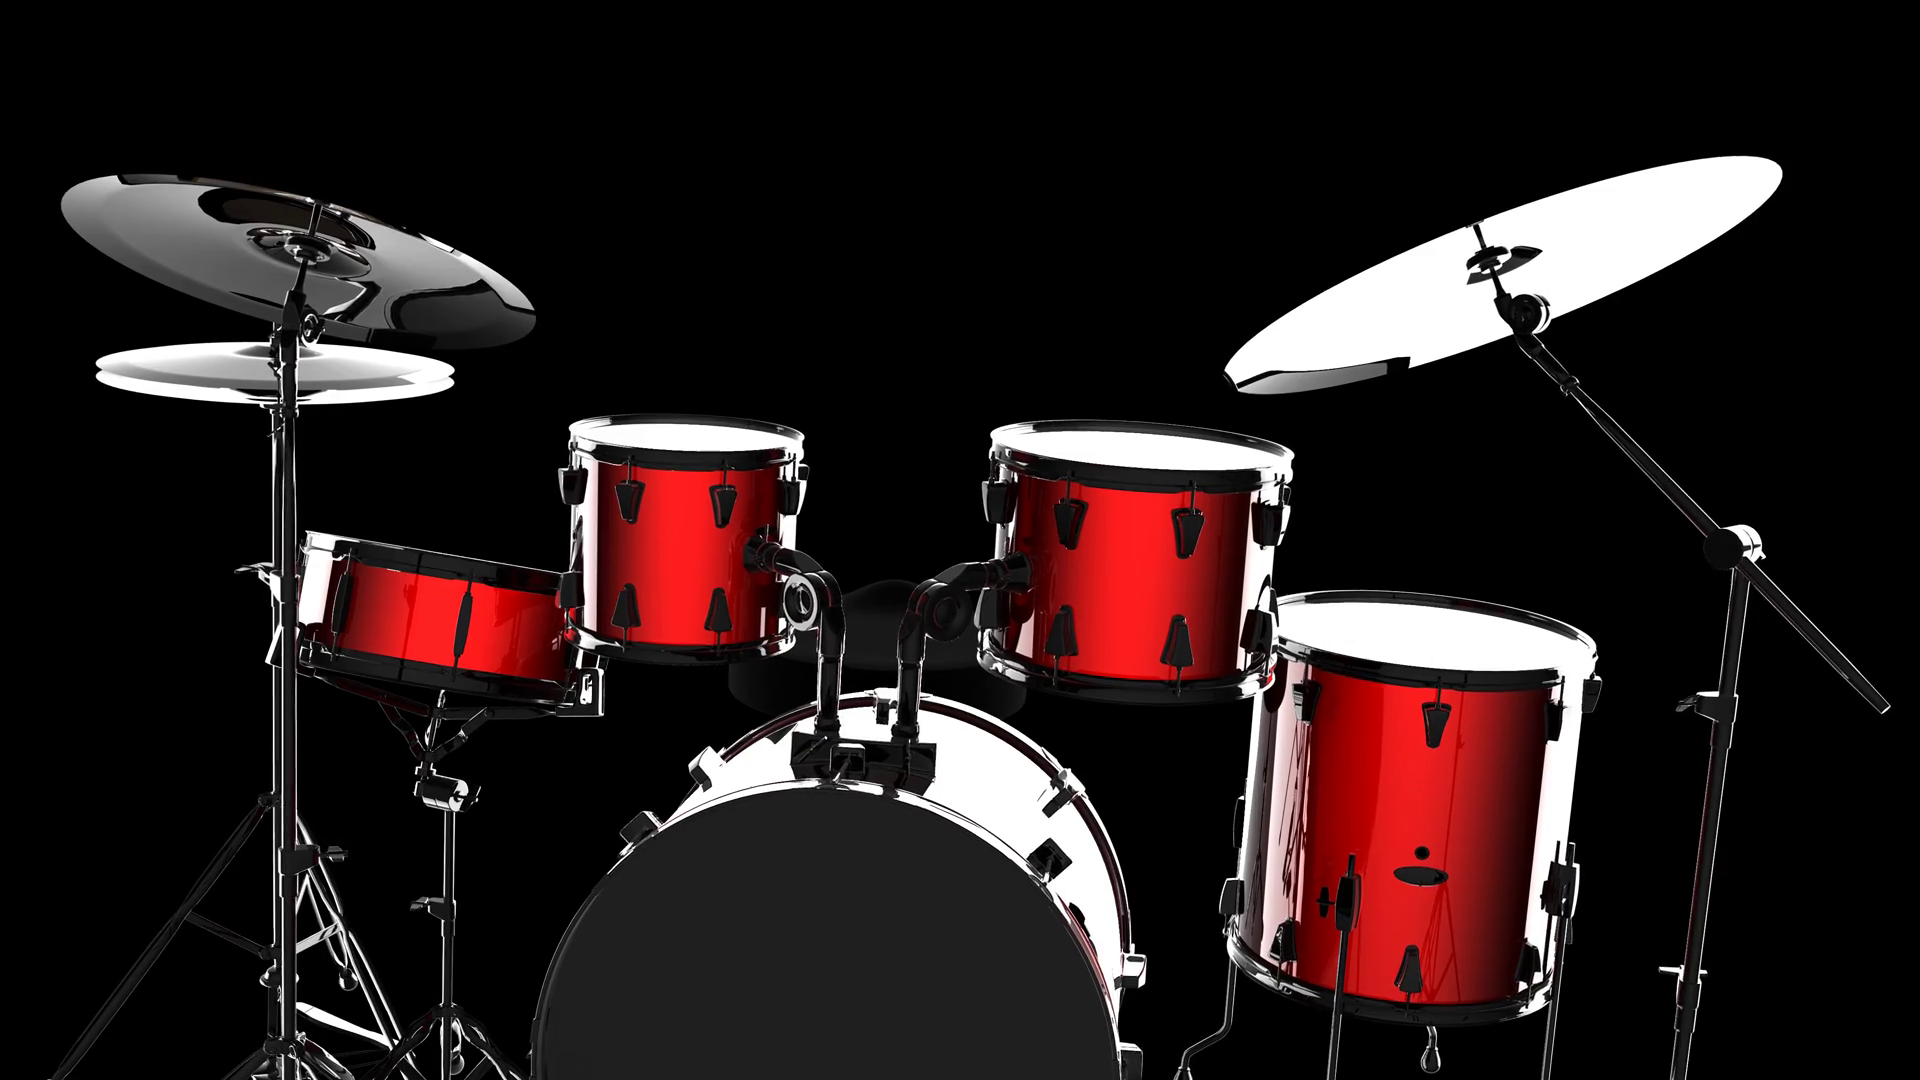 drum set on white background Motion Background   Storyblocks Video 1920x1080